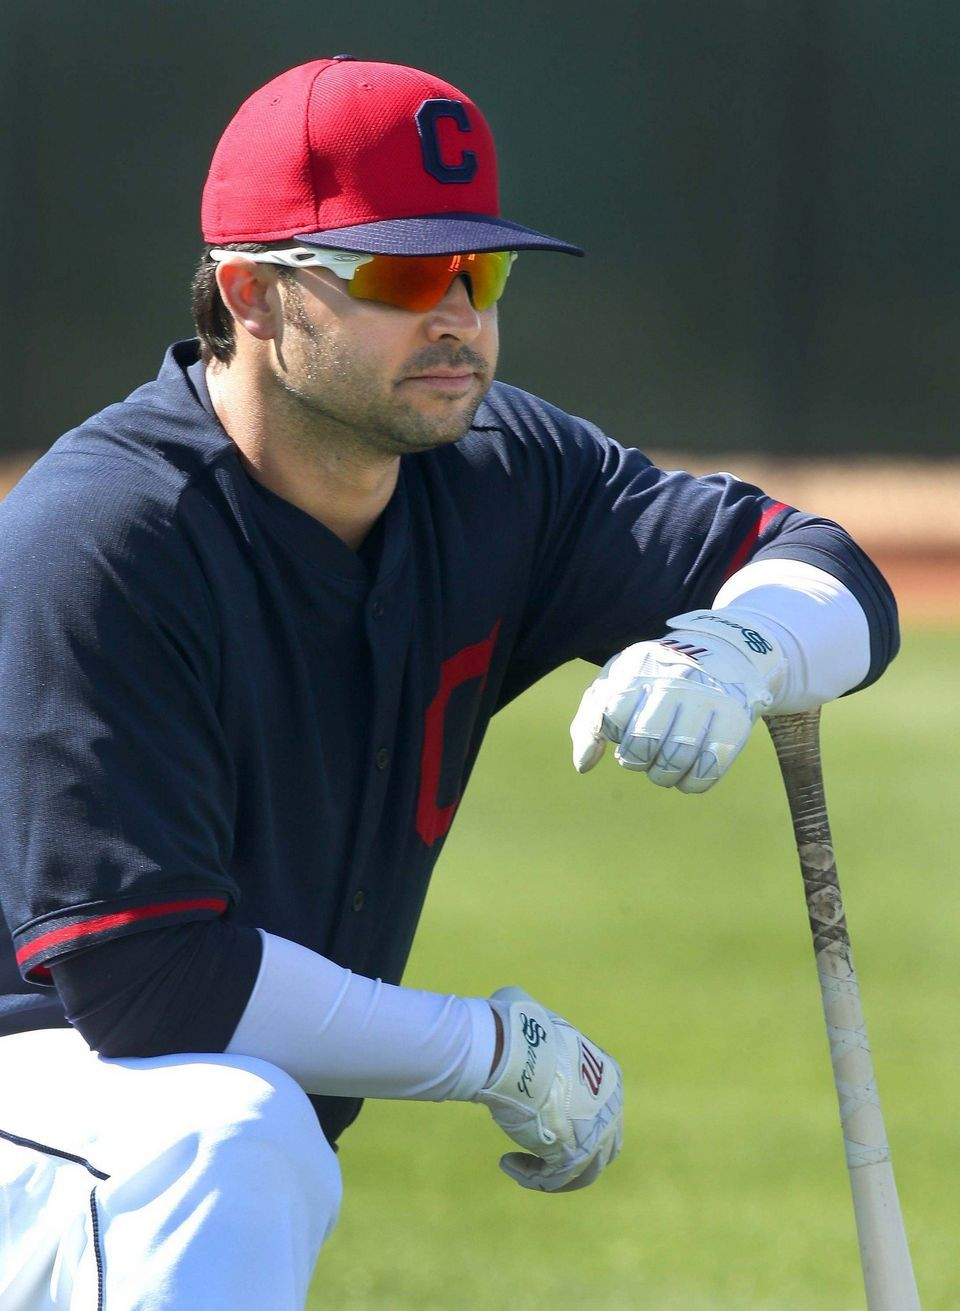 Cleveland Indians outfielders Spring Training 2015